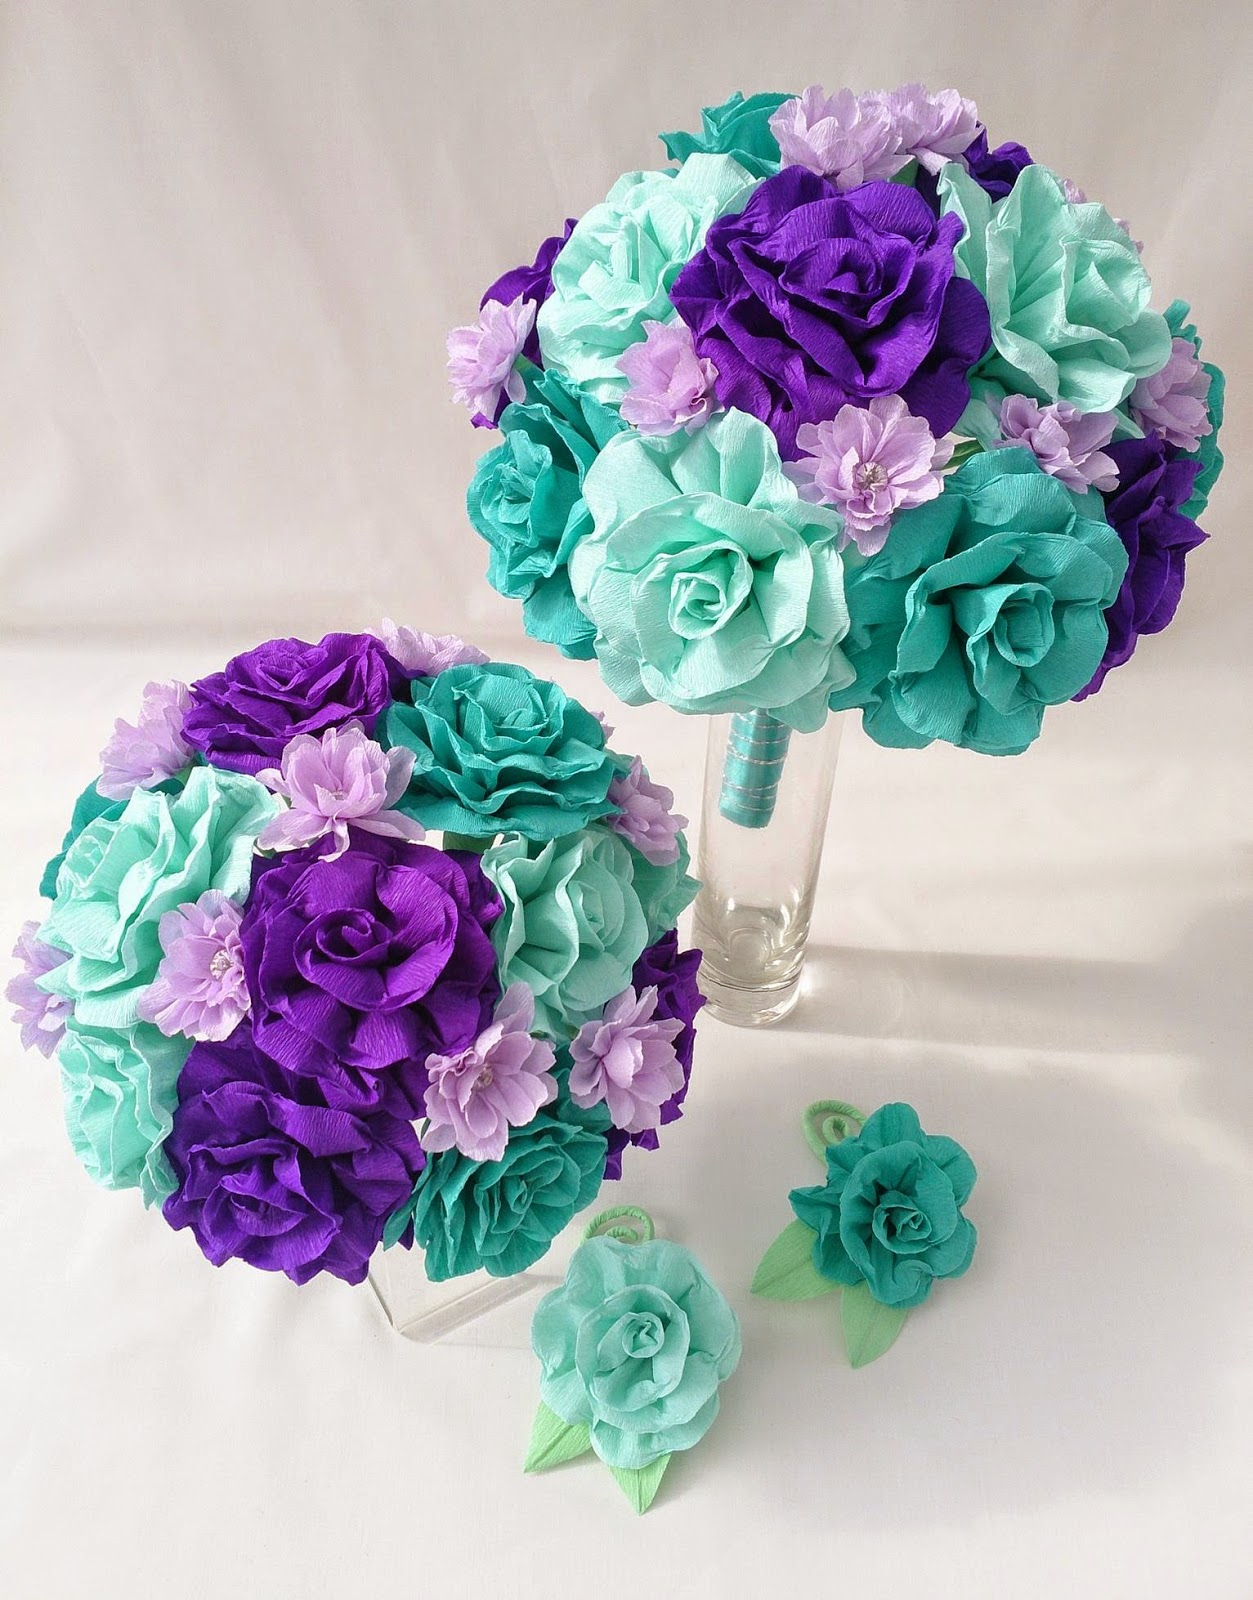 Crafty little beanut wedding flowers i have made for january 2015 if you would like to see more of my crepe paper flowers please head over to my facebook page the paper blooms izmirmasajfo